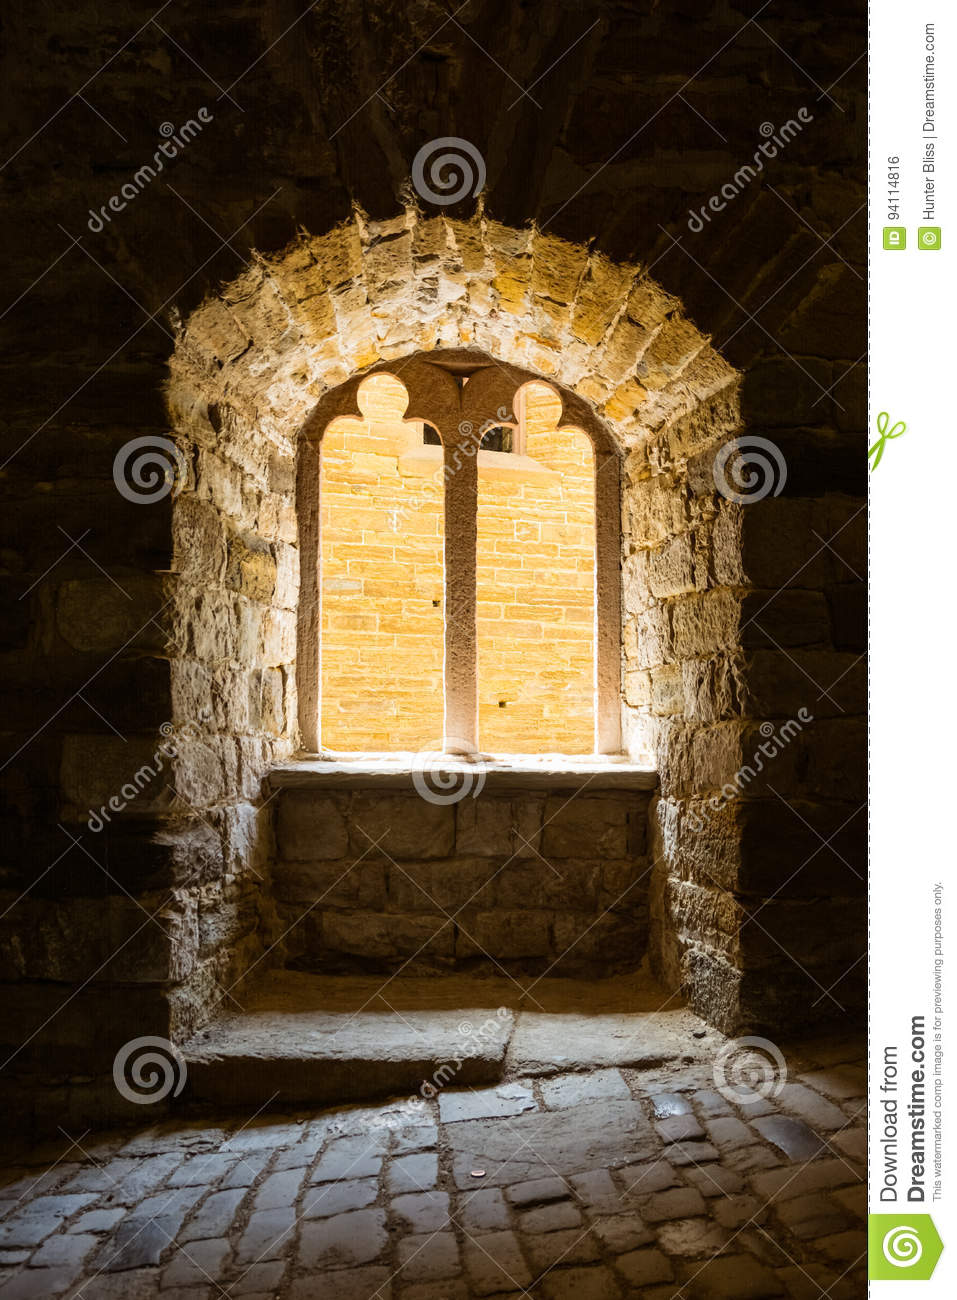 Gothic Castle Window Sunlight Pouring in Dark Contrast Architect